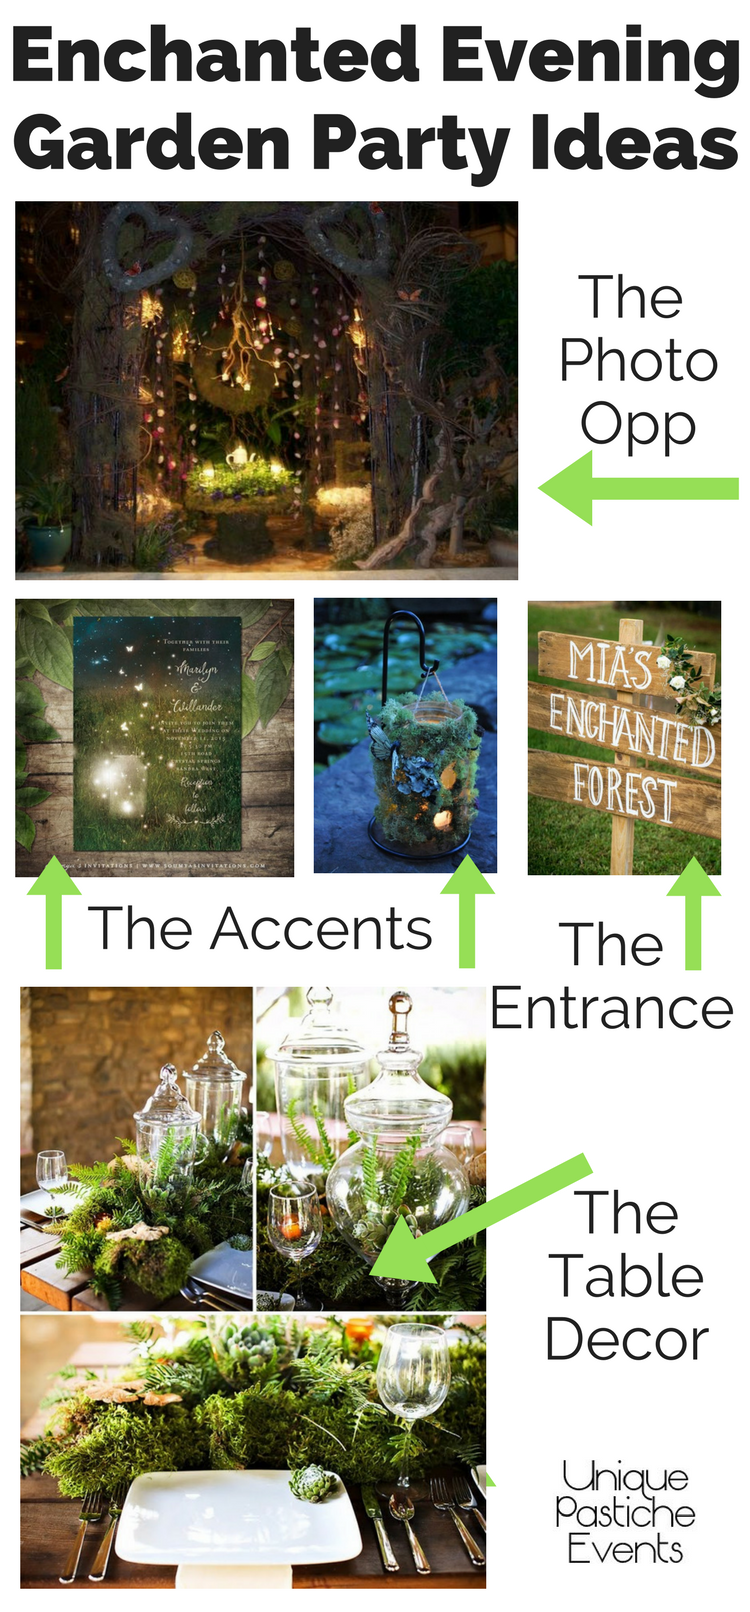 Enchanted Evening Garden Party Ideas